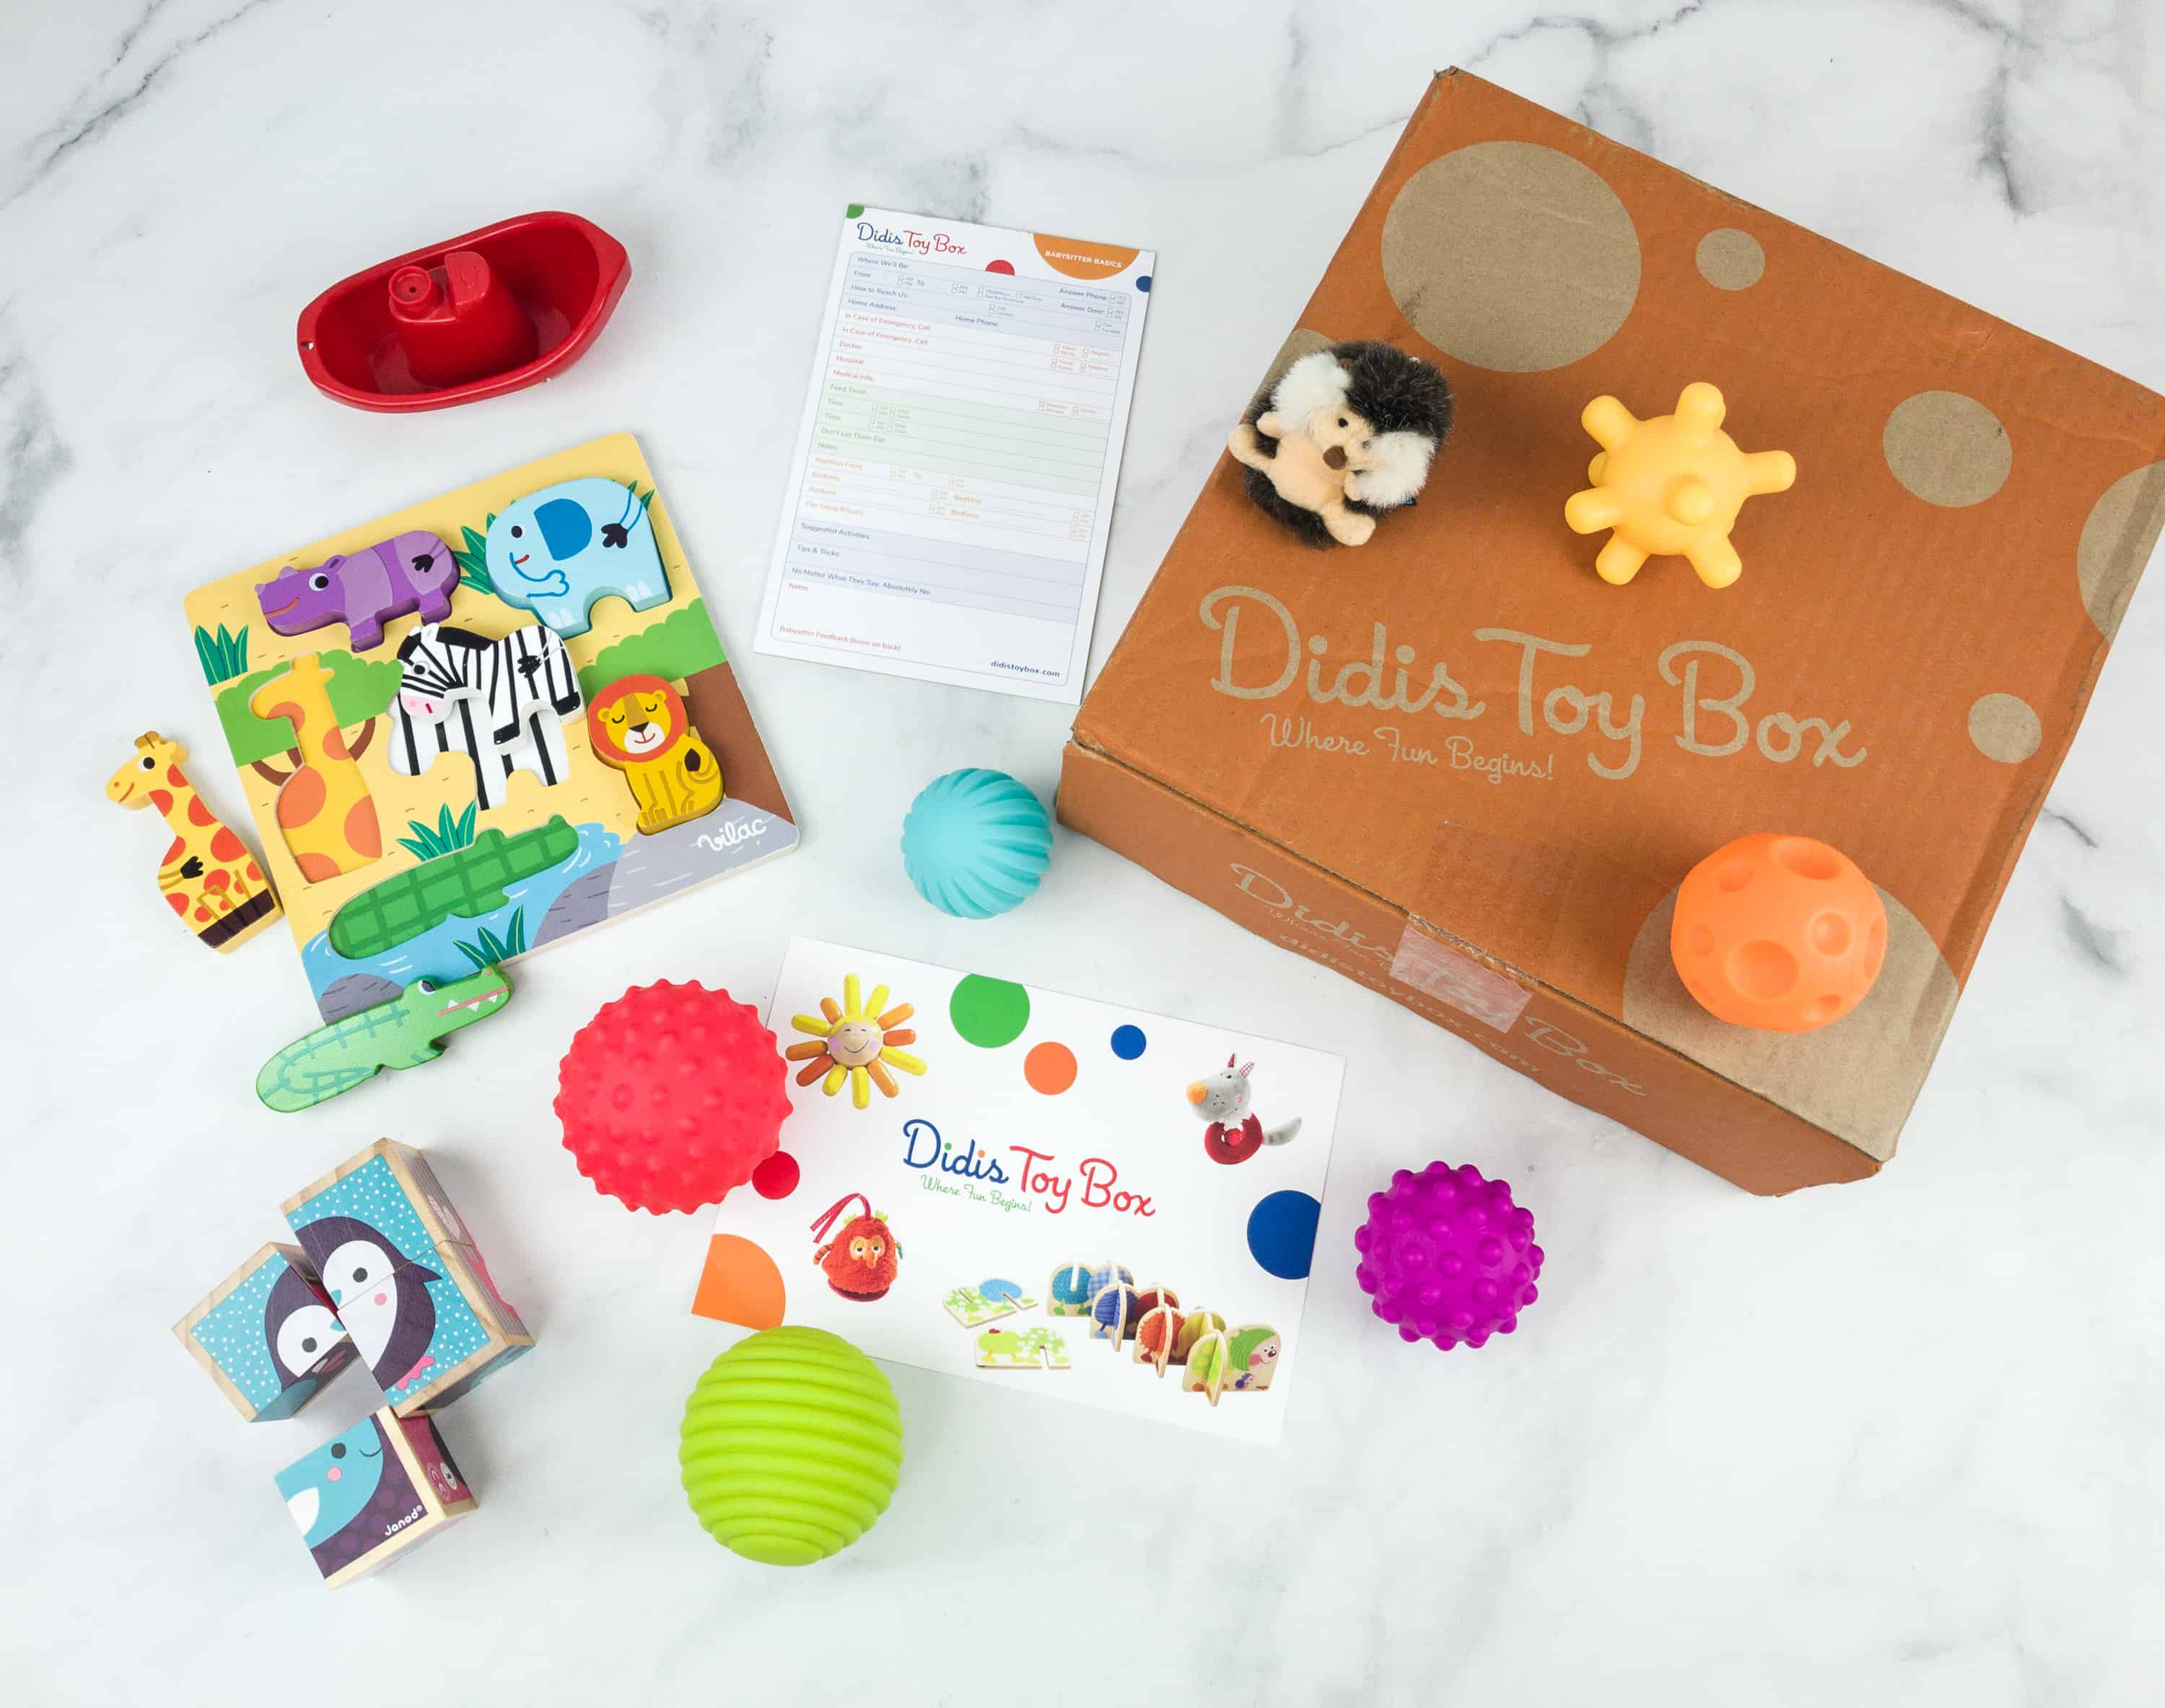 Didis Toy Box November 2018 Subscription Box Review & Coupon